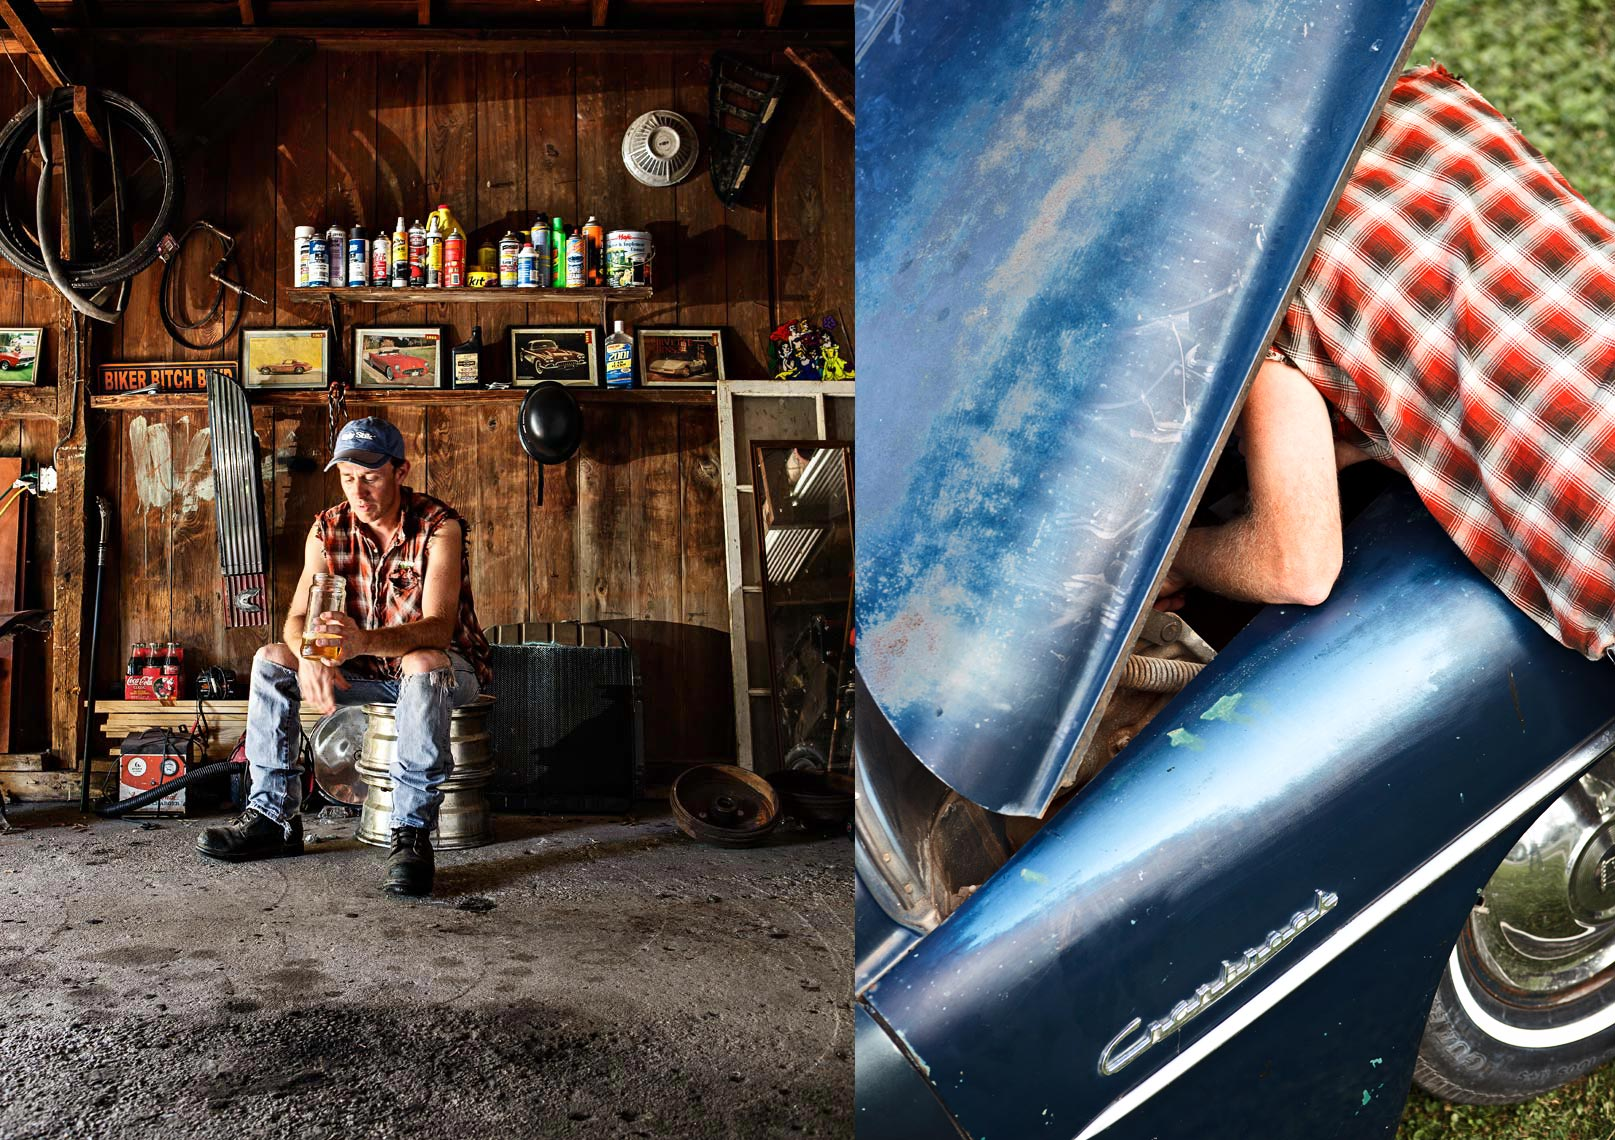 Two photographs of redneck man working on vintage car